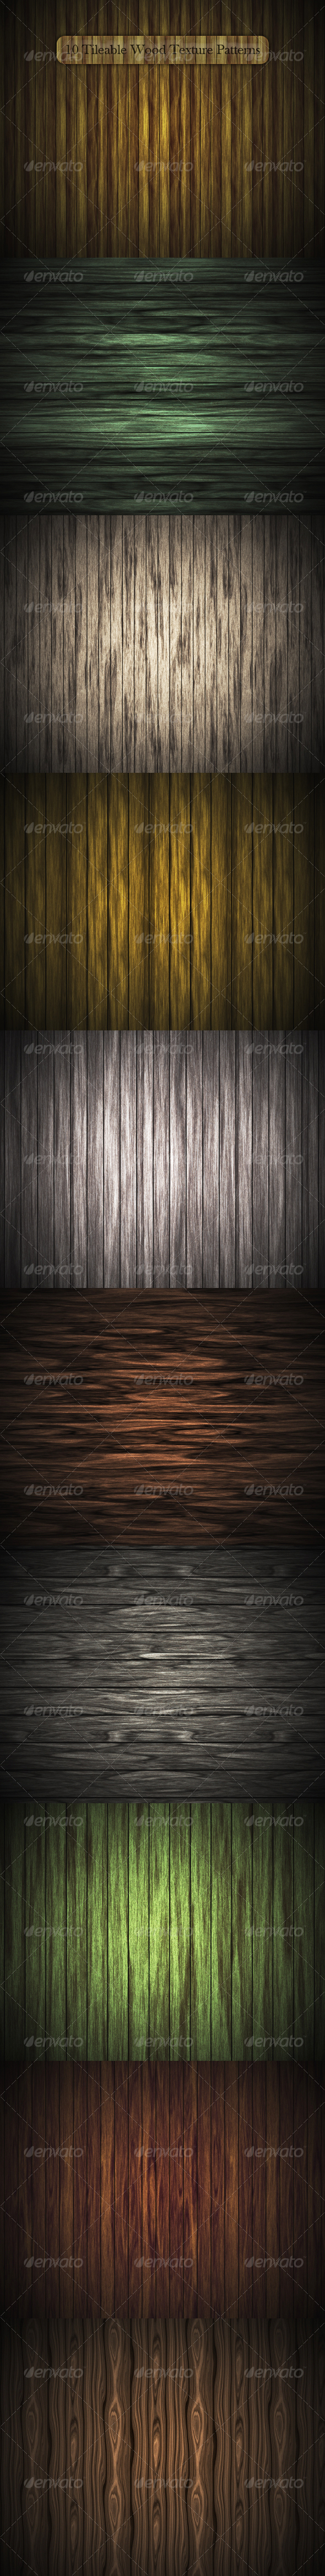 10 Tileable Wood Texture Patterns - Textures / Fills / Patterns Photoshop